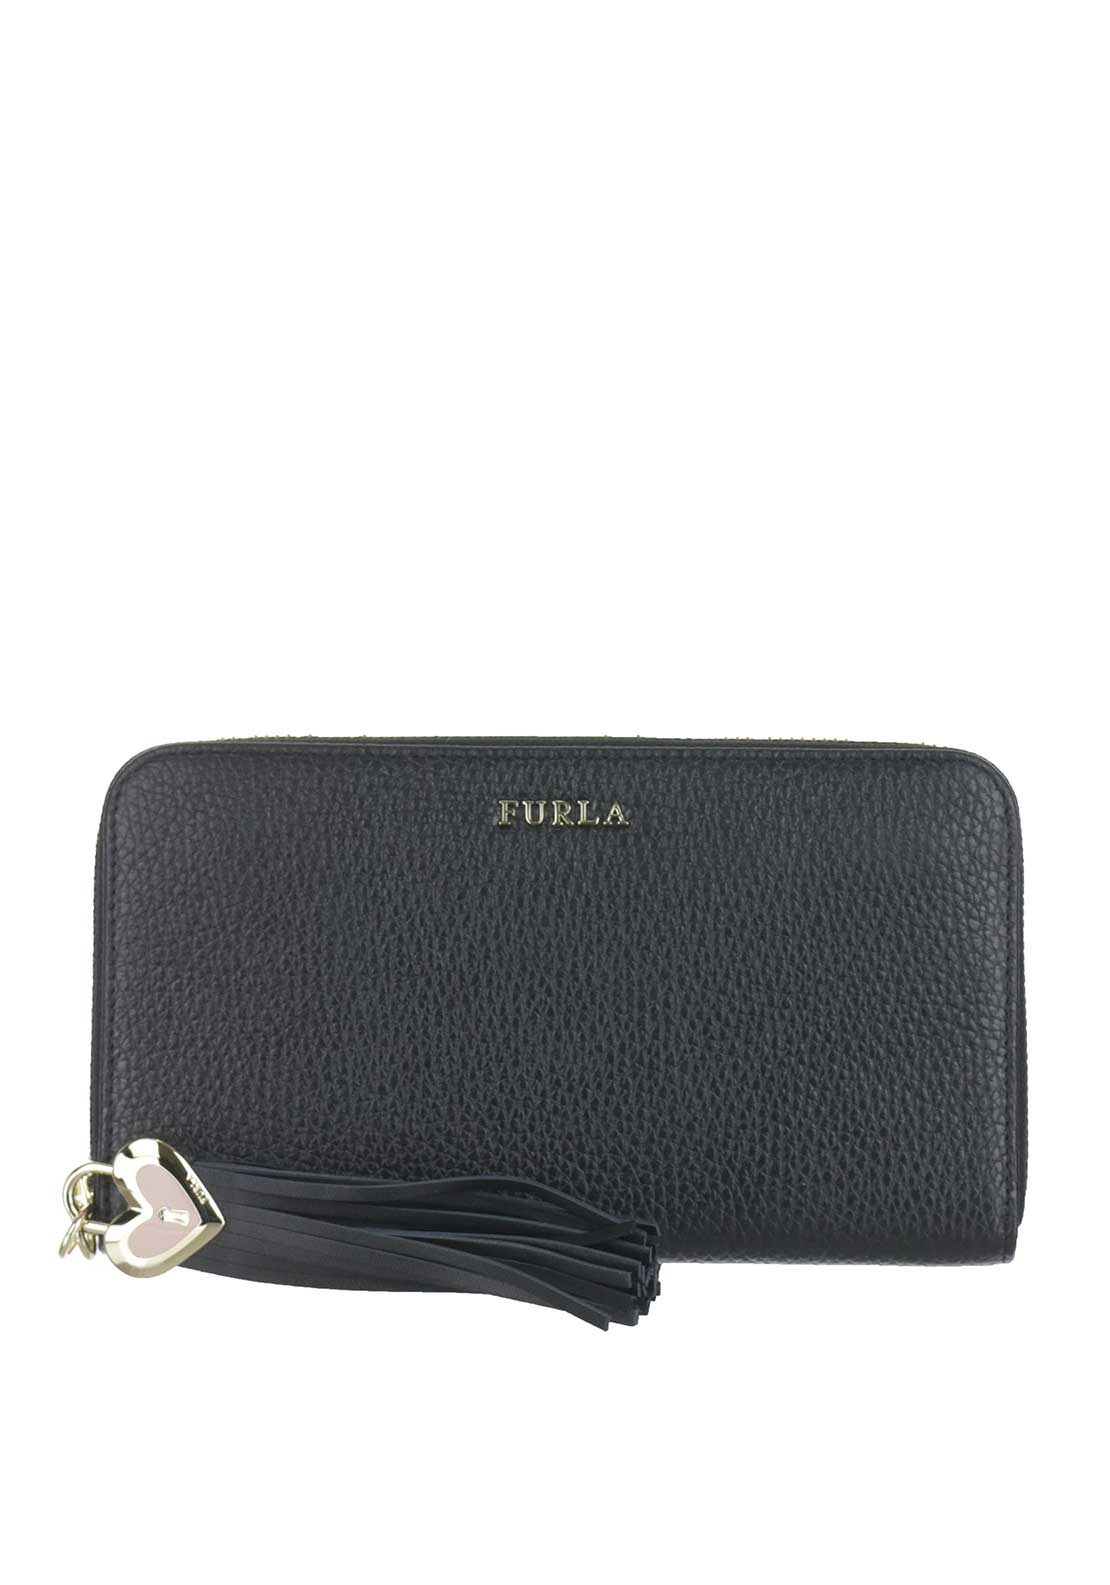 Furla Cuore Leather Zip Around Purse, Black